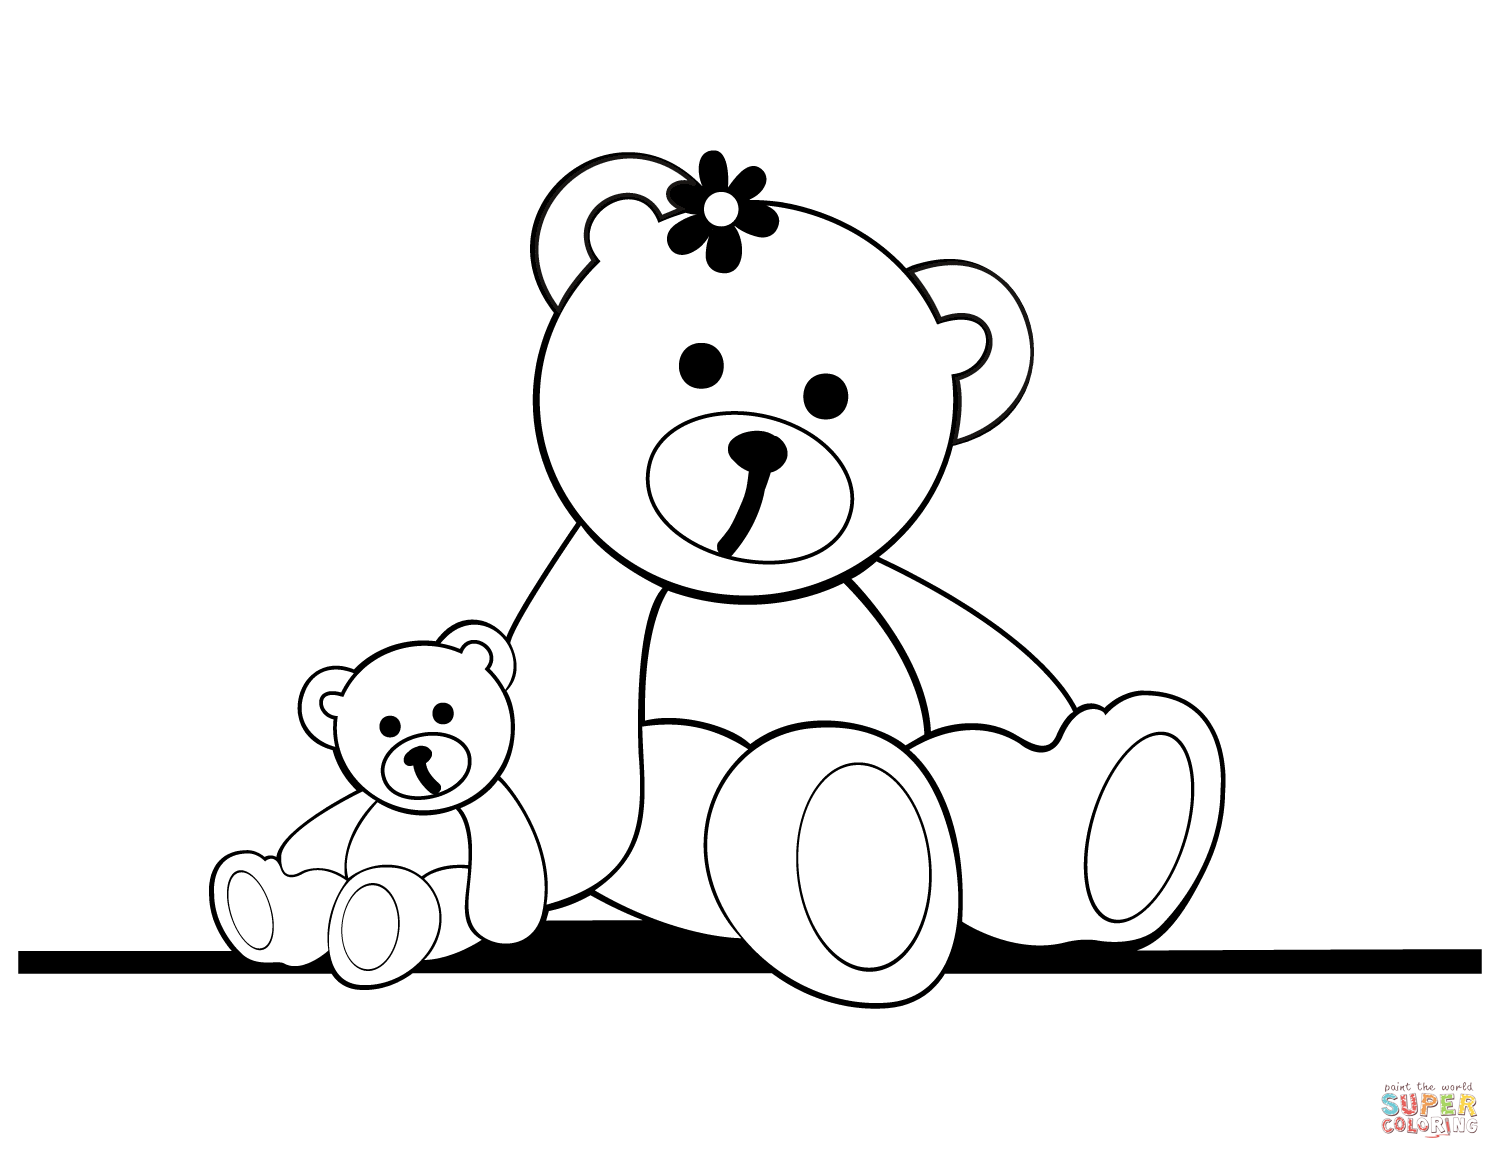 1500x1159 Top Teddy Bear Coloring Pages Free Printable Cartoons Christmas